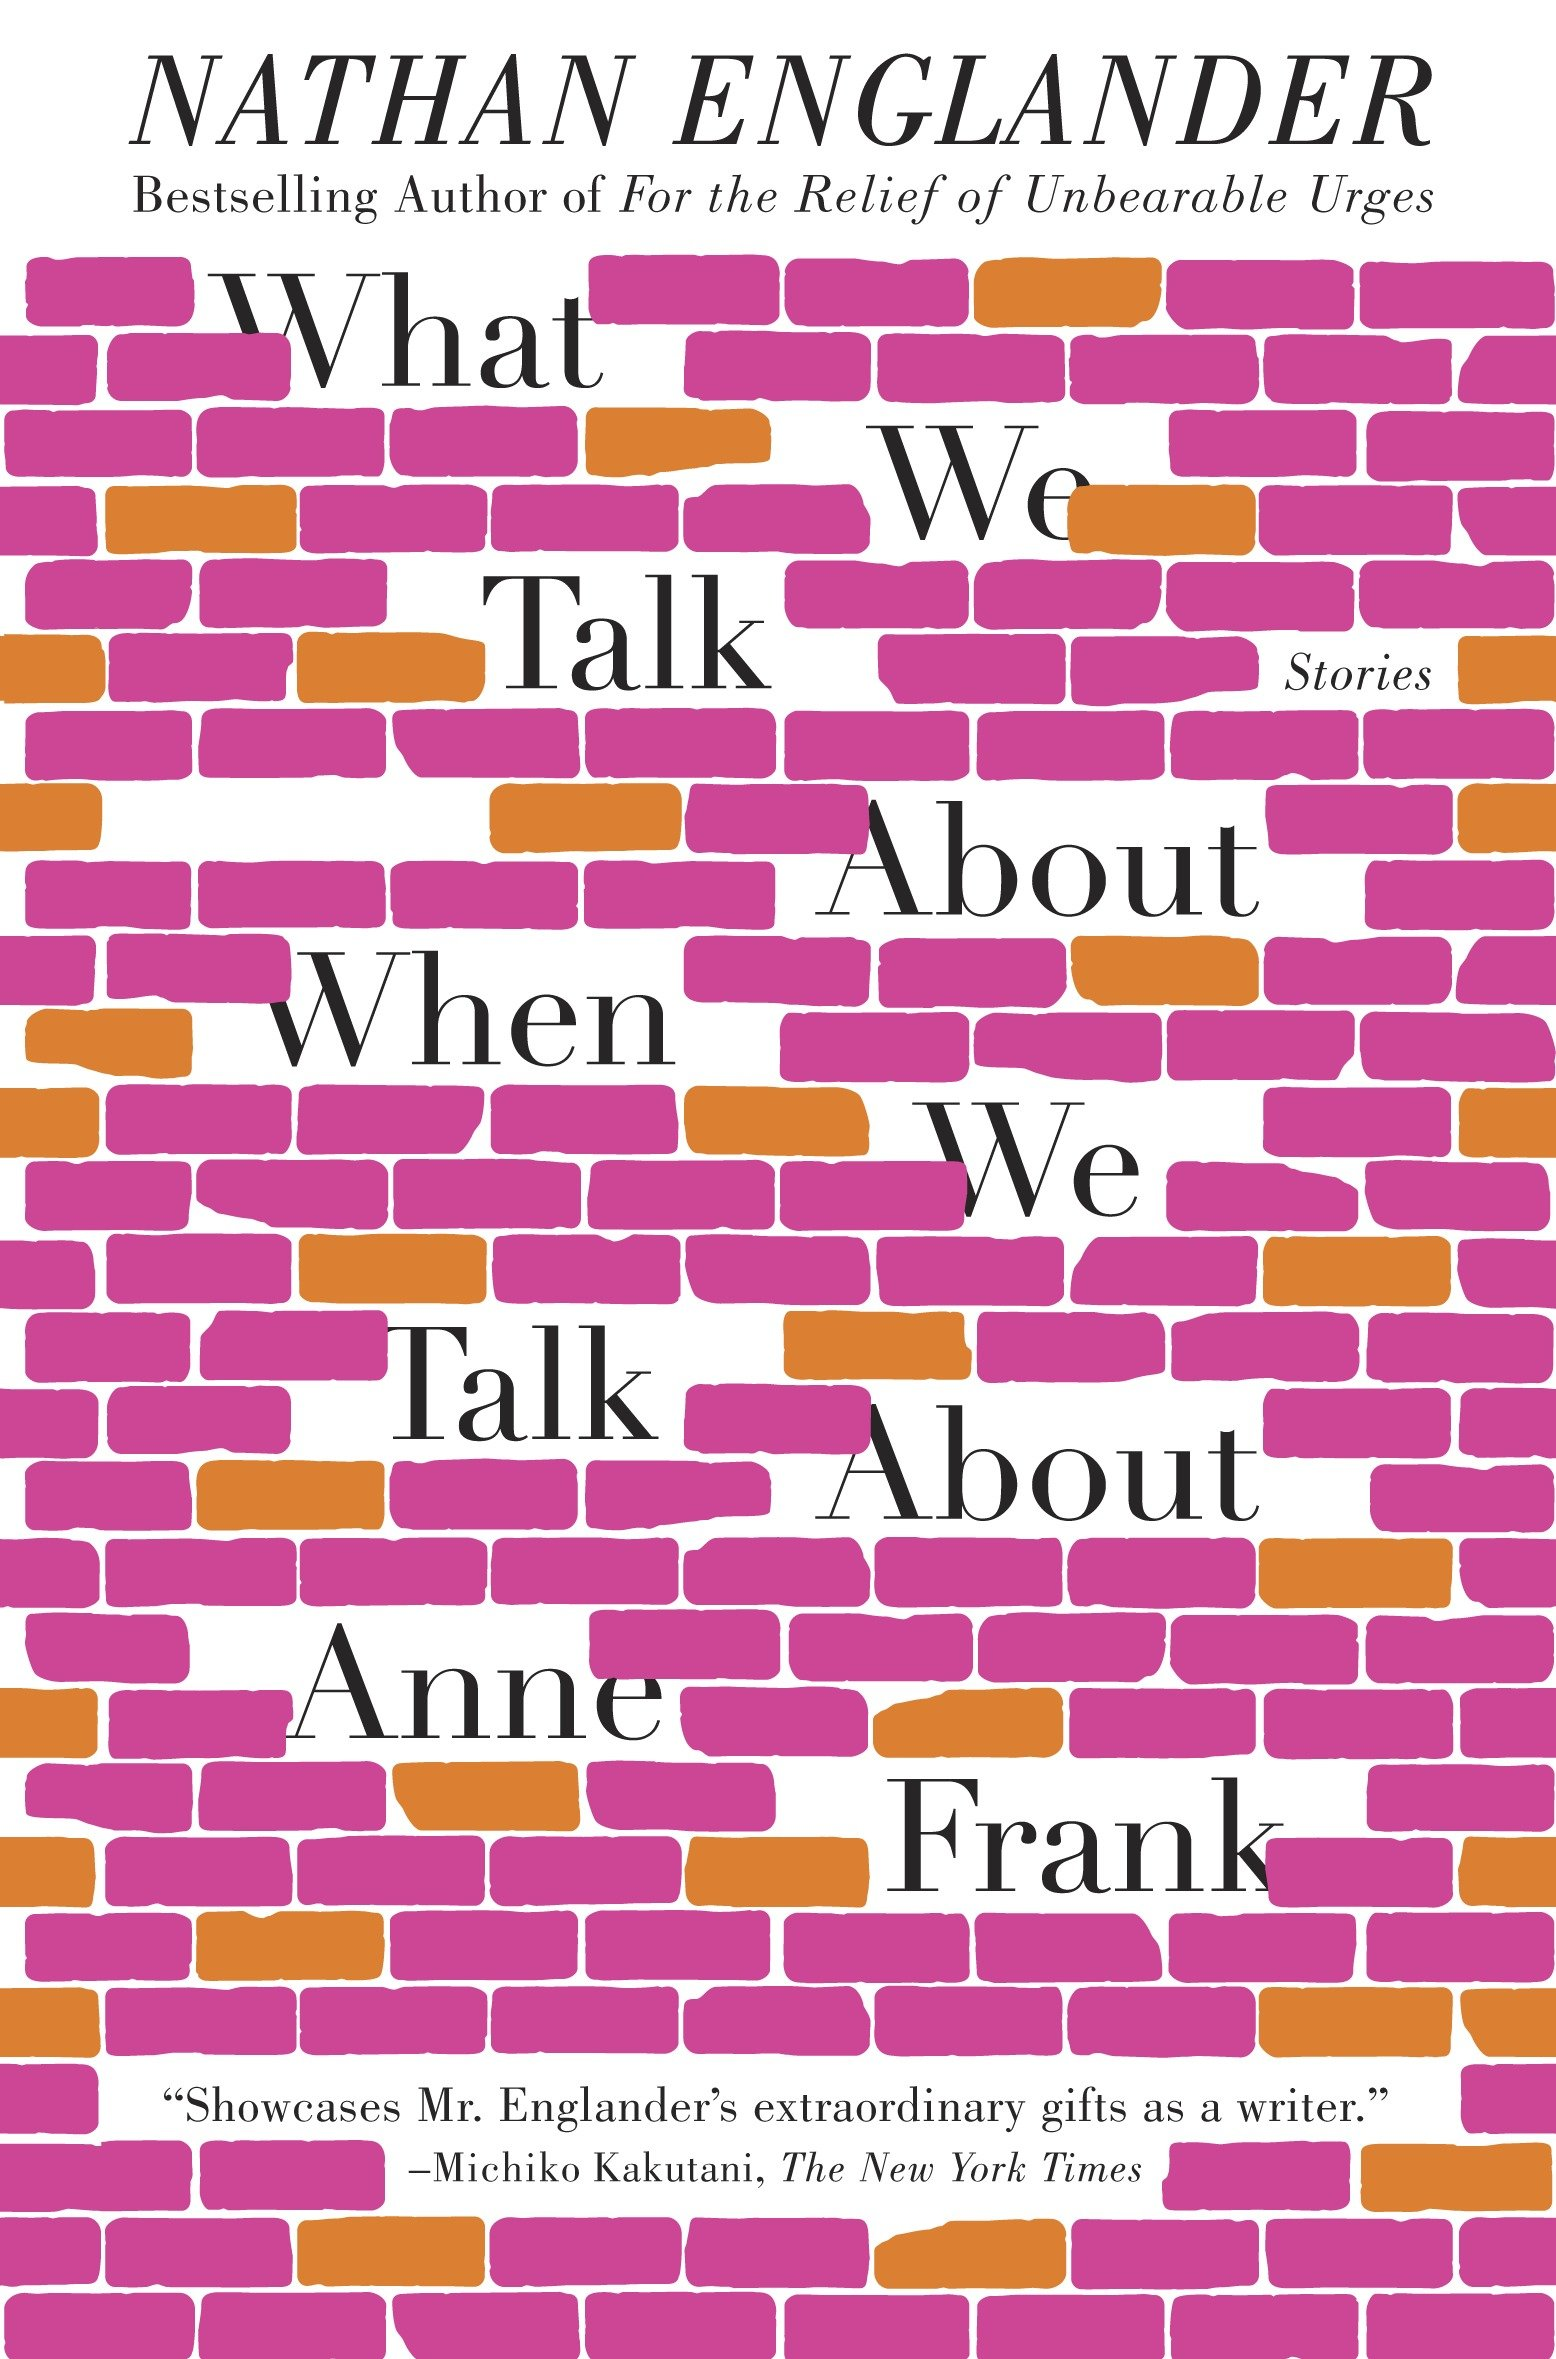 What we talk about when we talk about Anne Frank Stories cover image